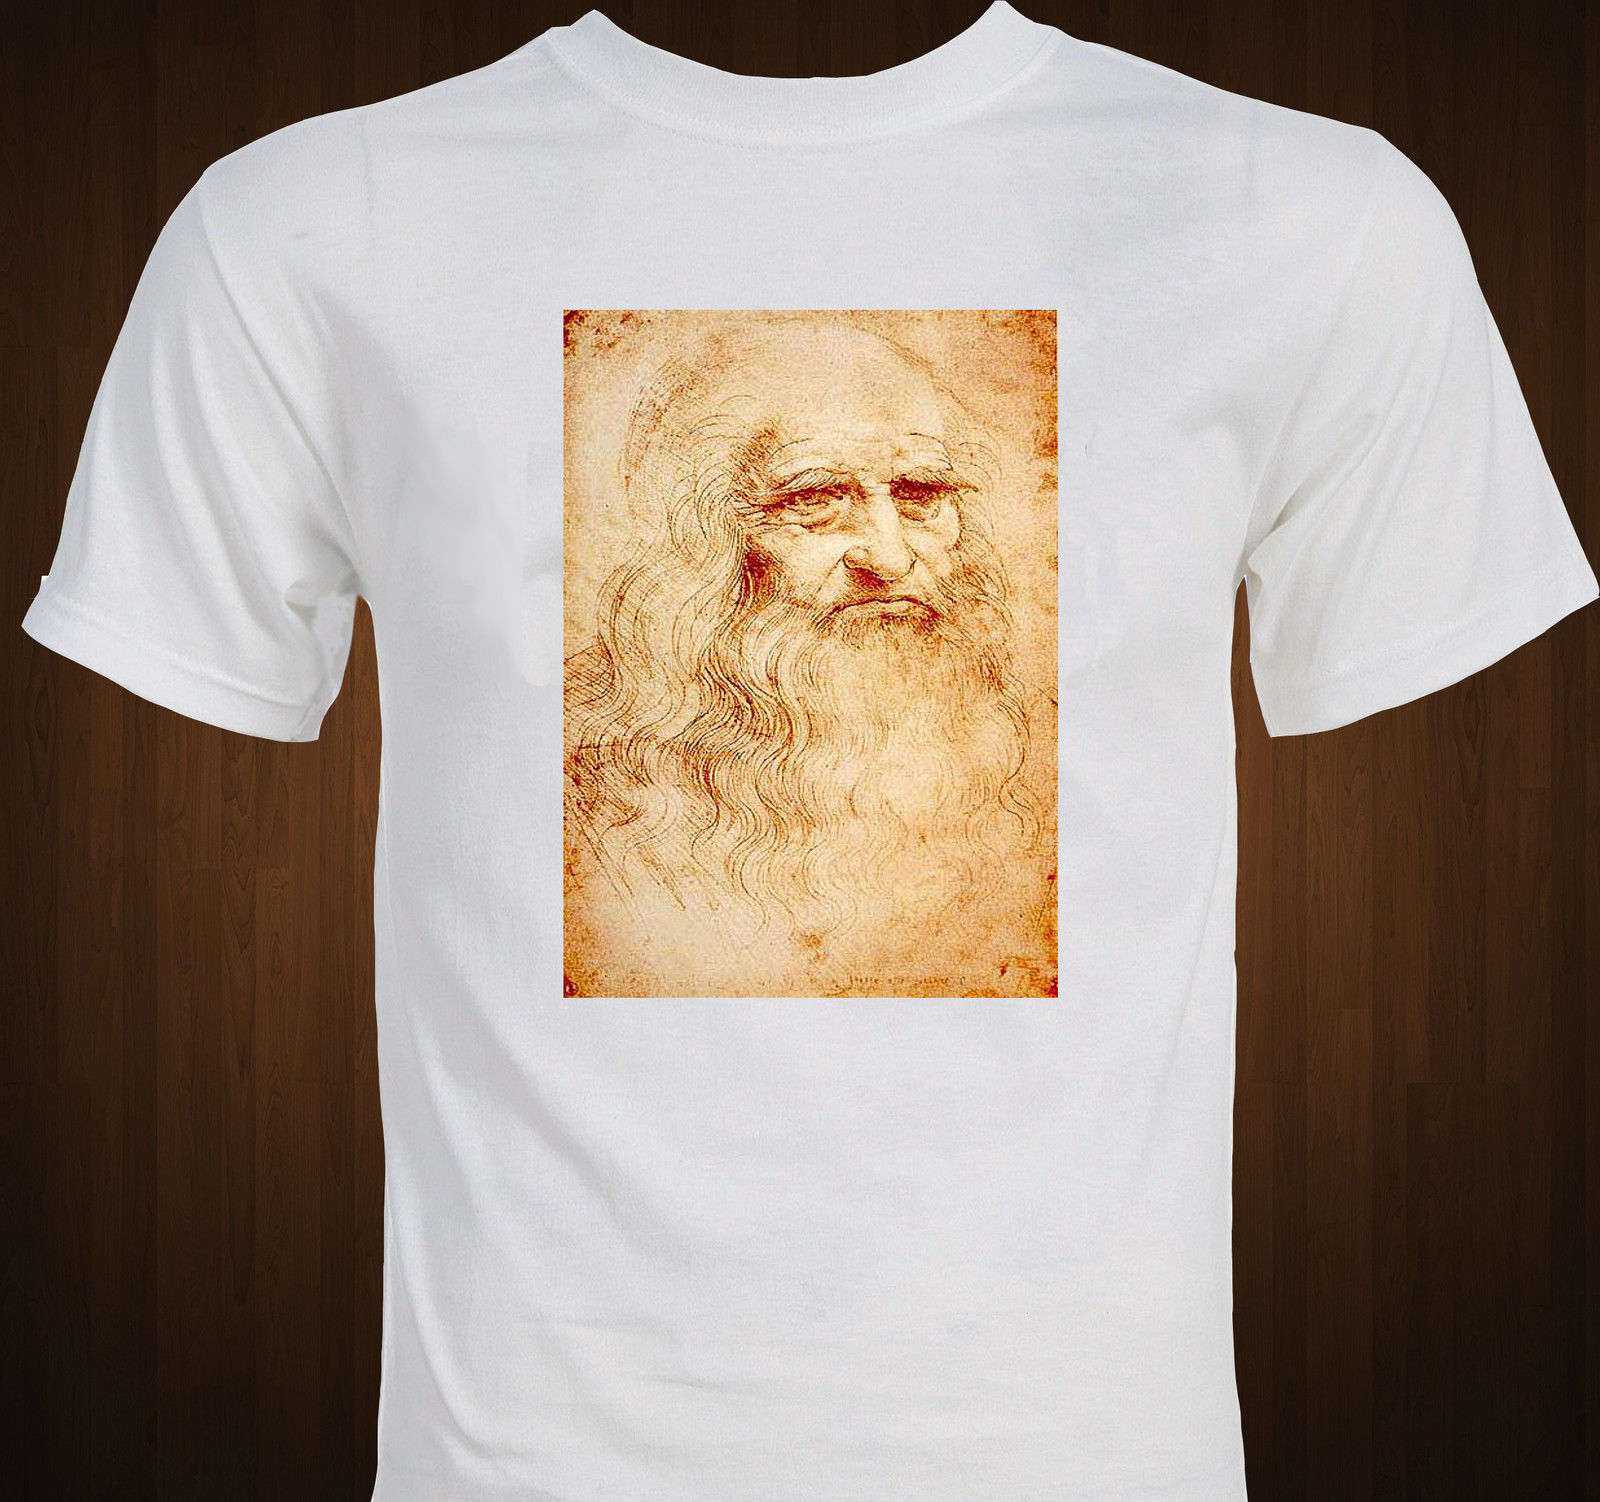 Newest 2019 T Shirt Men Tshirt T Shirt Funny T-Shirt Men Leonardo Da Vinci Self Portrait Drawing Renaissance Art Tee Shirts image